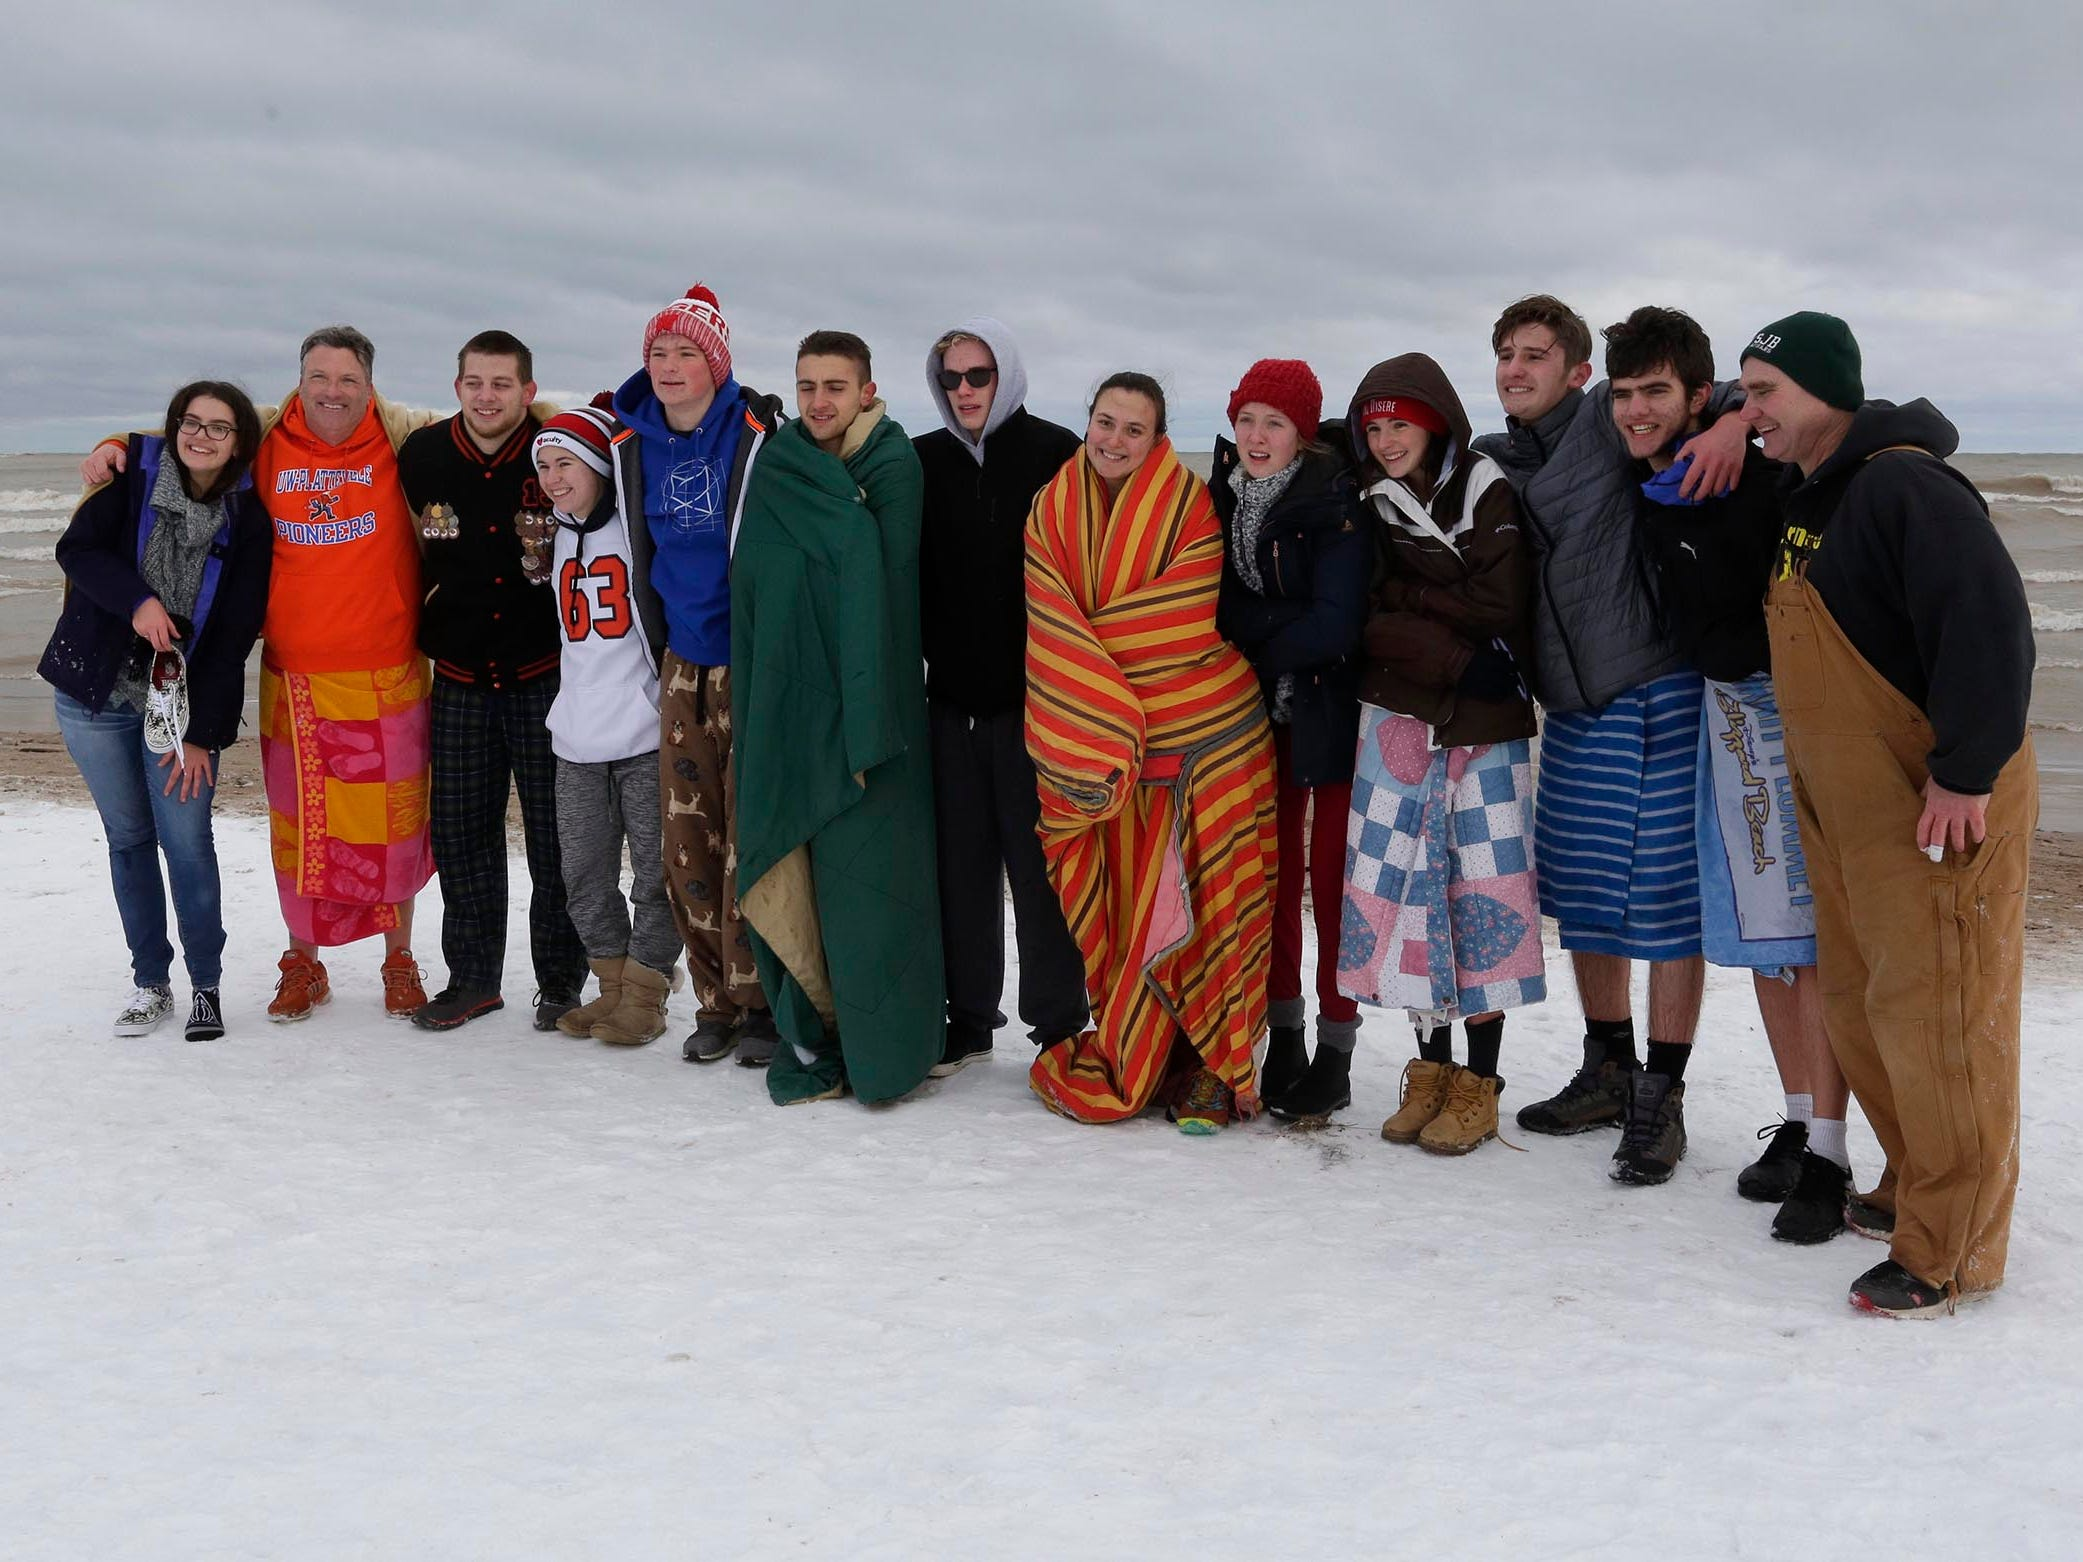 AFS students from Plymouth High School pose after participating in the annual Polar Bear Plunge, Tuesday, January 1, 2019, at Deland Park in Sheboygan, Wis. According to AFS advisor Ann Weeden, students from many countries including Denmark, Norway, Macedonia, Spain, Italy, Jordan and Japan participated in the dip.